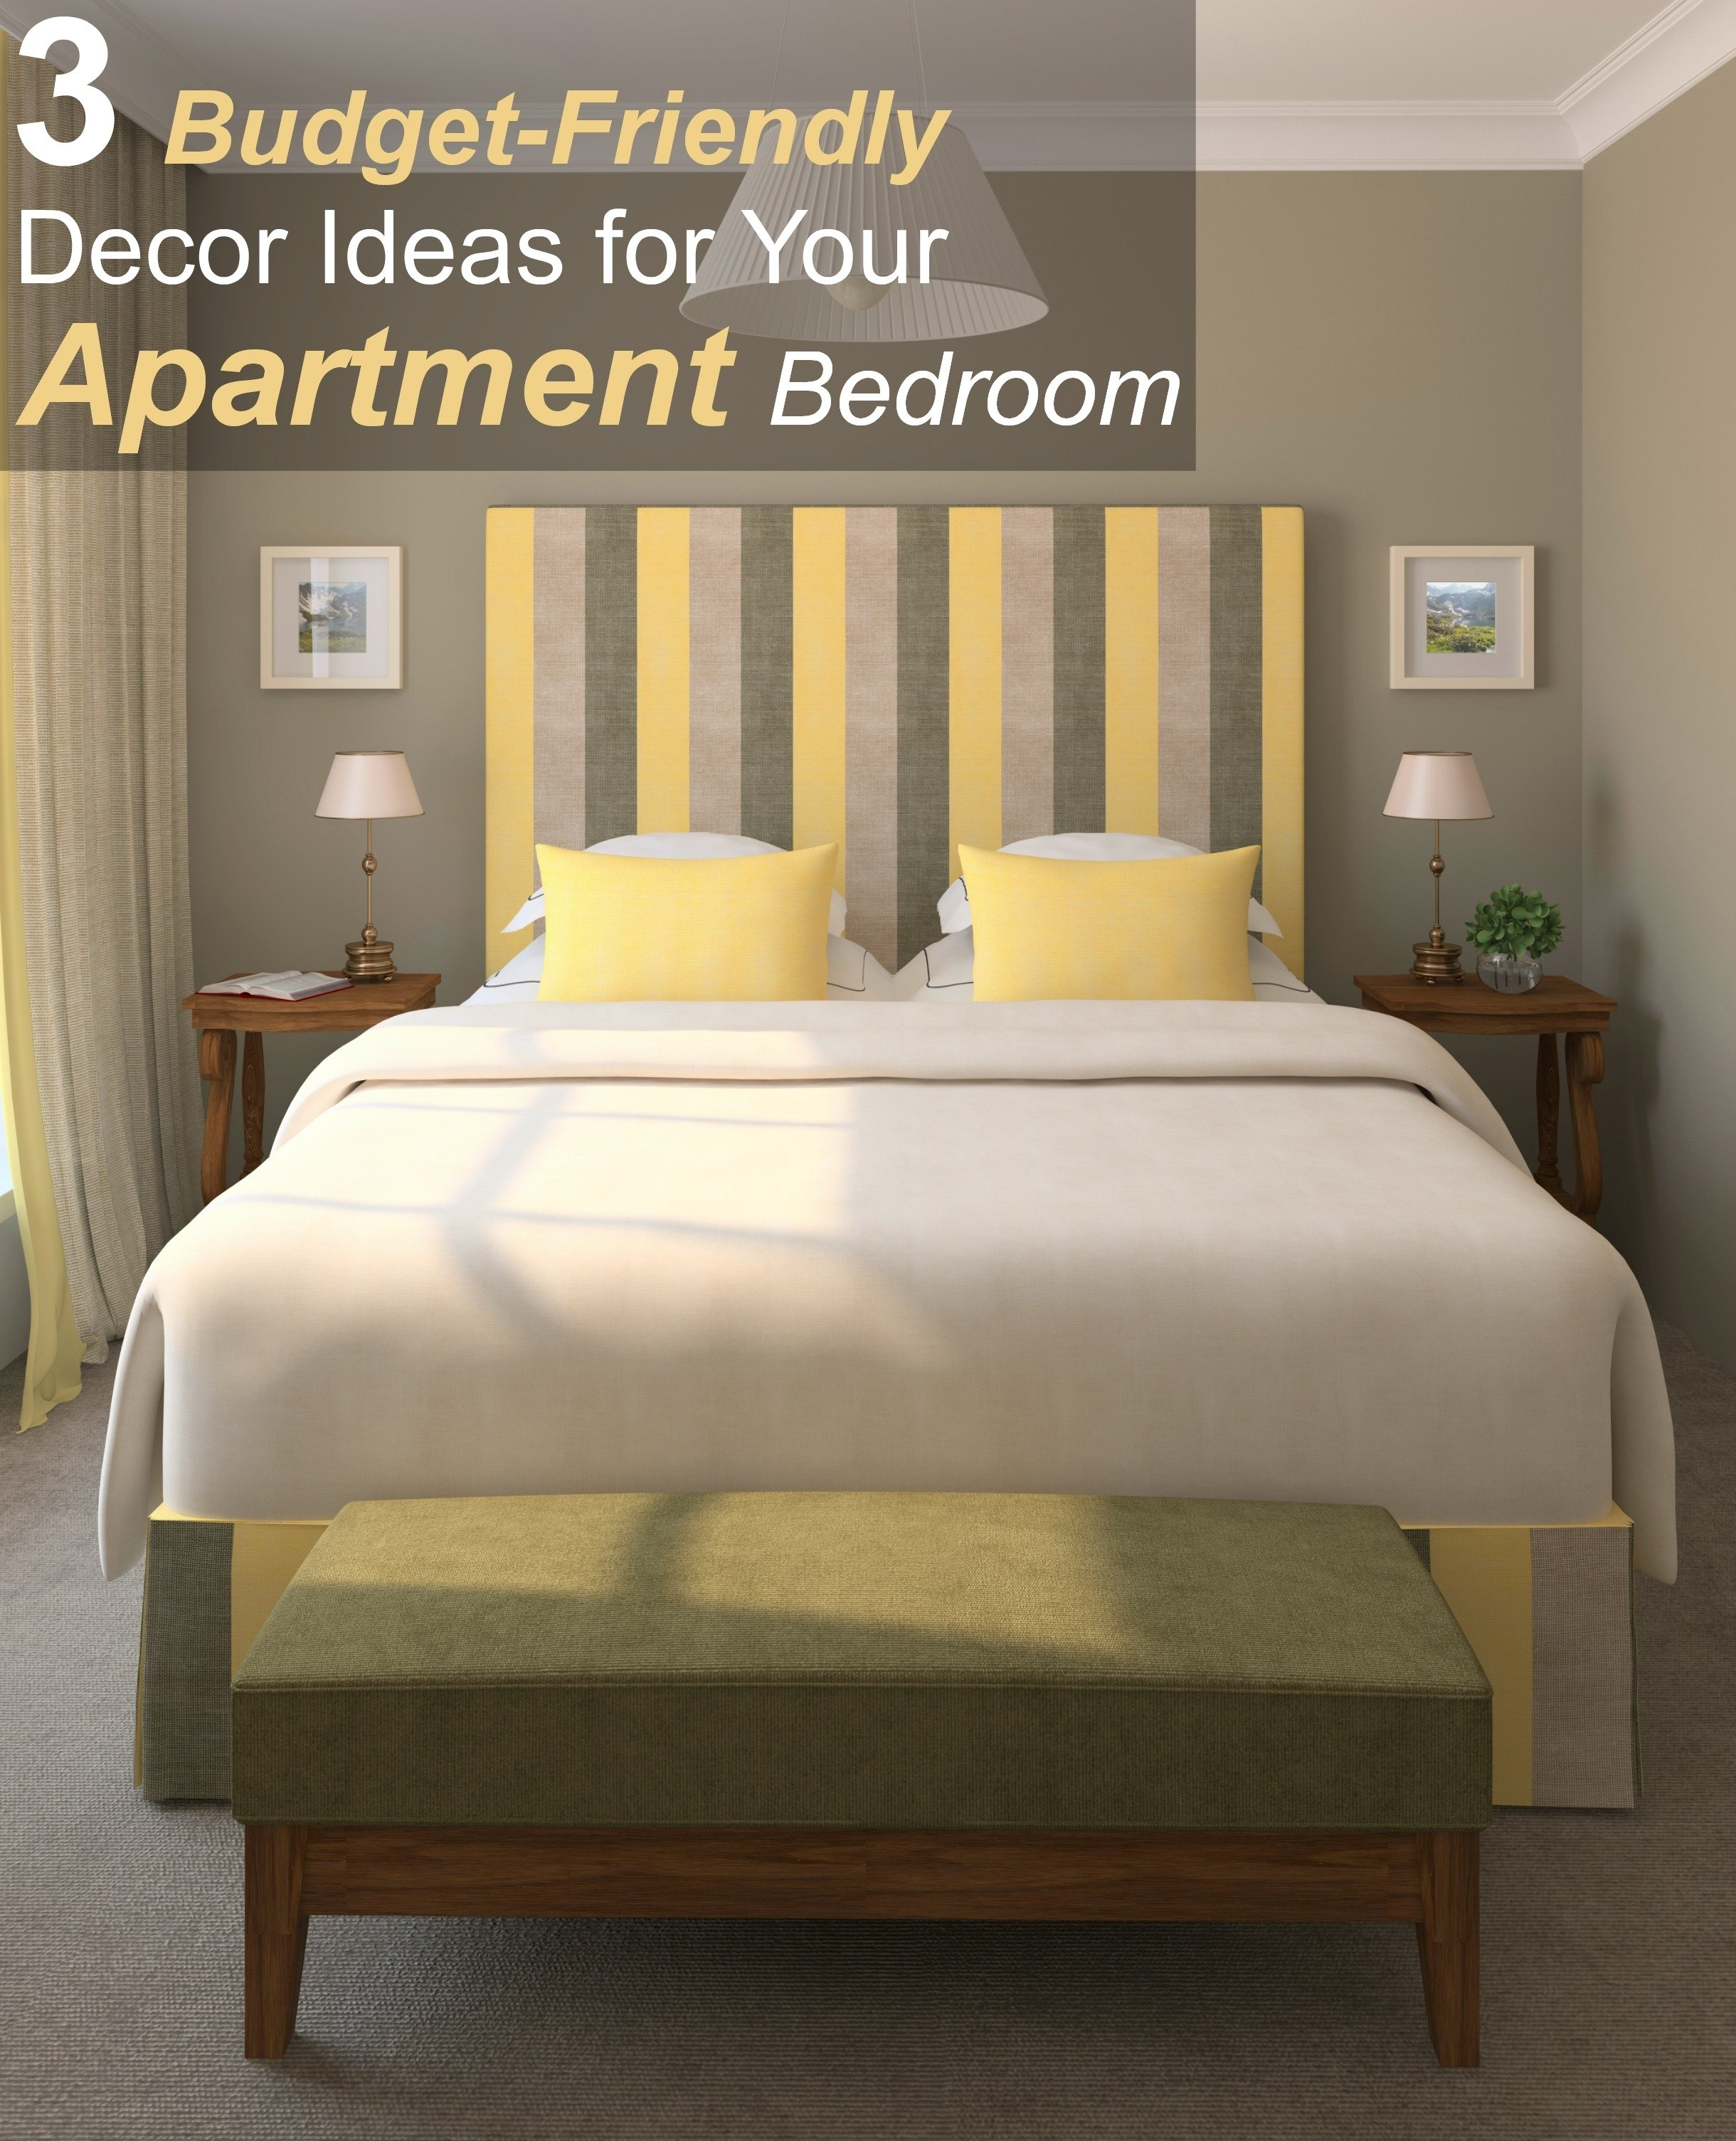 10 Cute Apartment Bedroom Decorating Ideas On A Budget 3 budget friendly decor ideas for your apartment bedroom